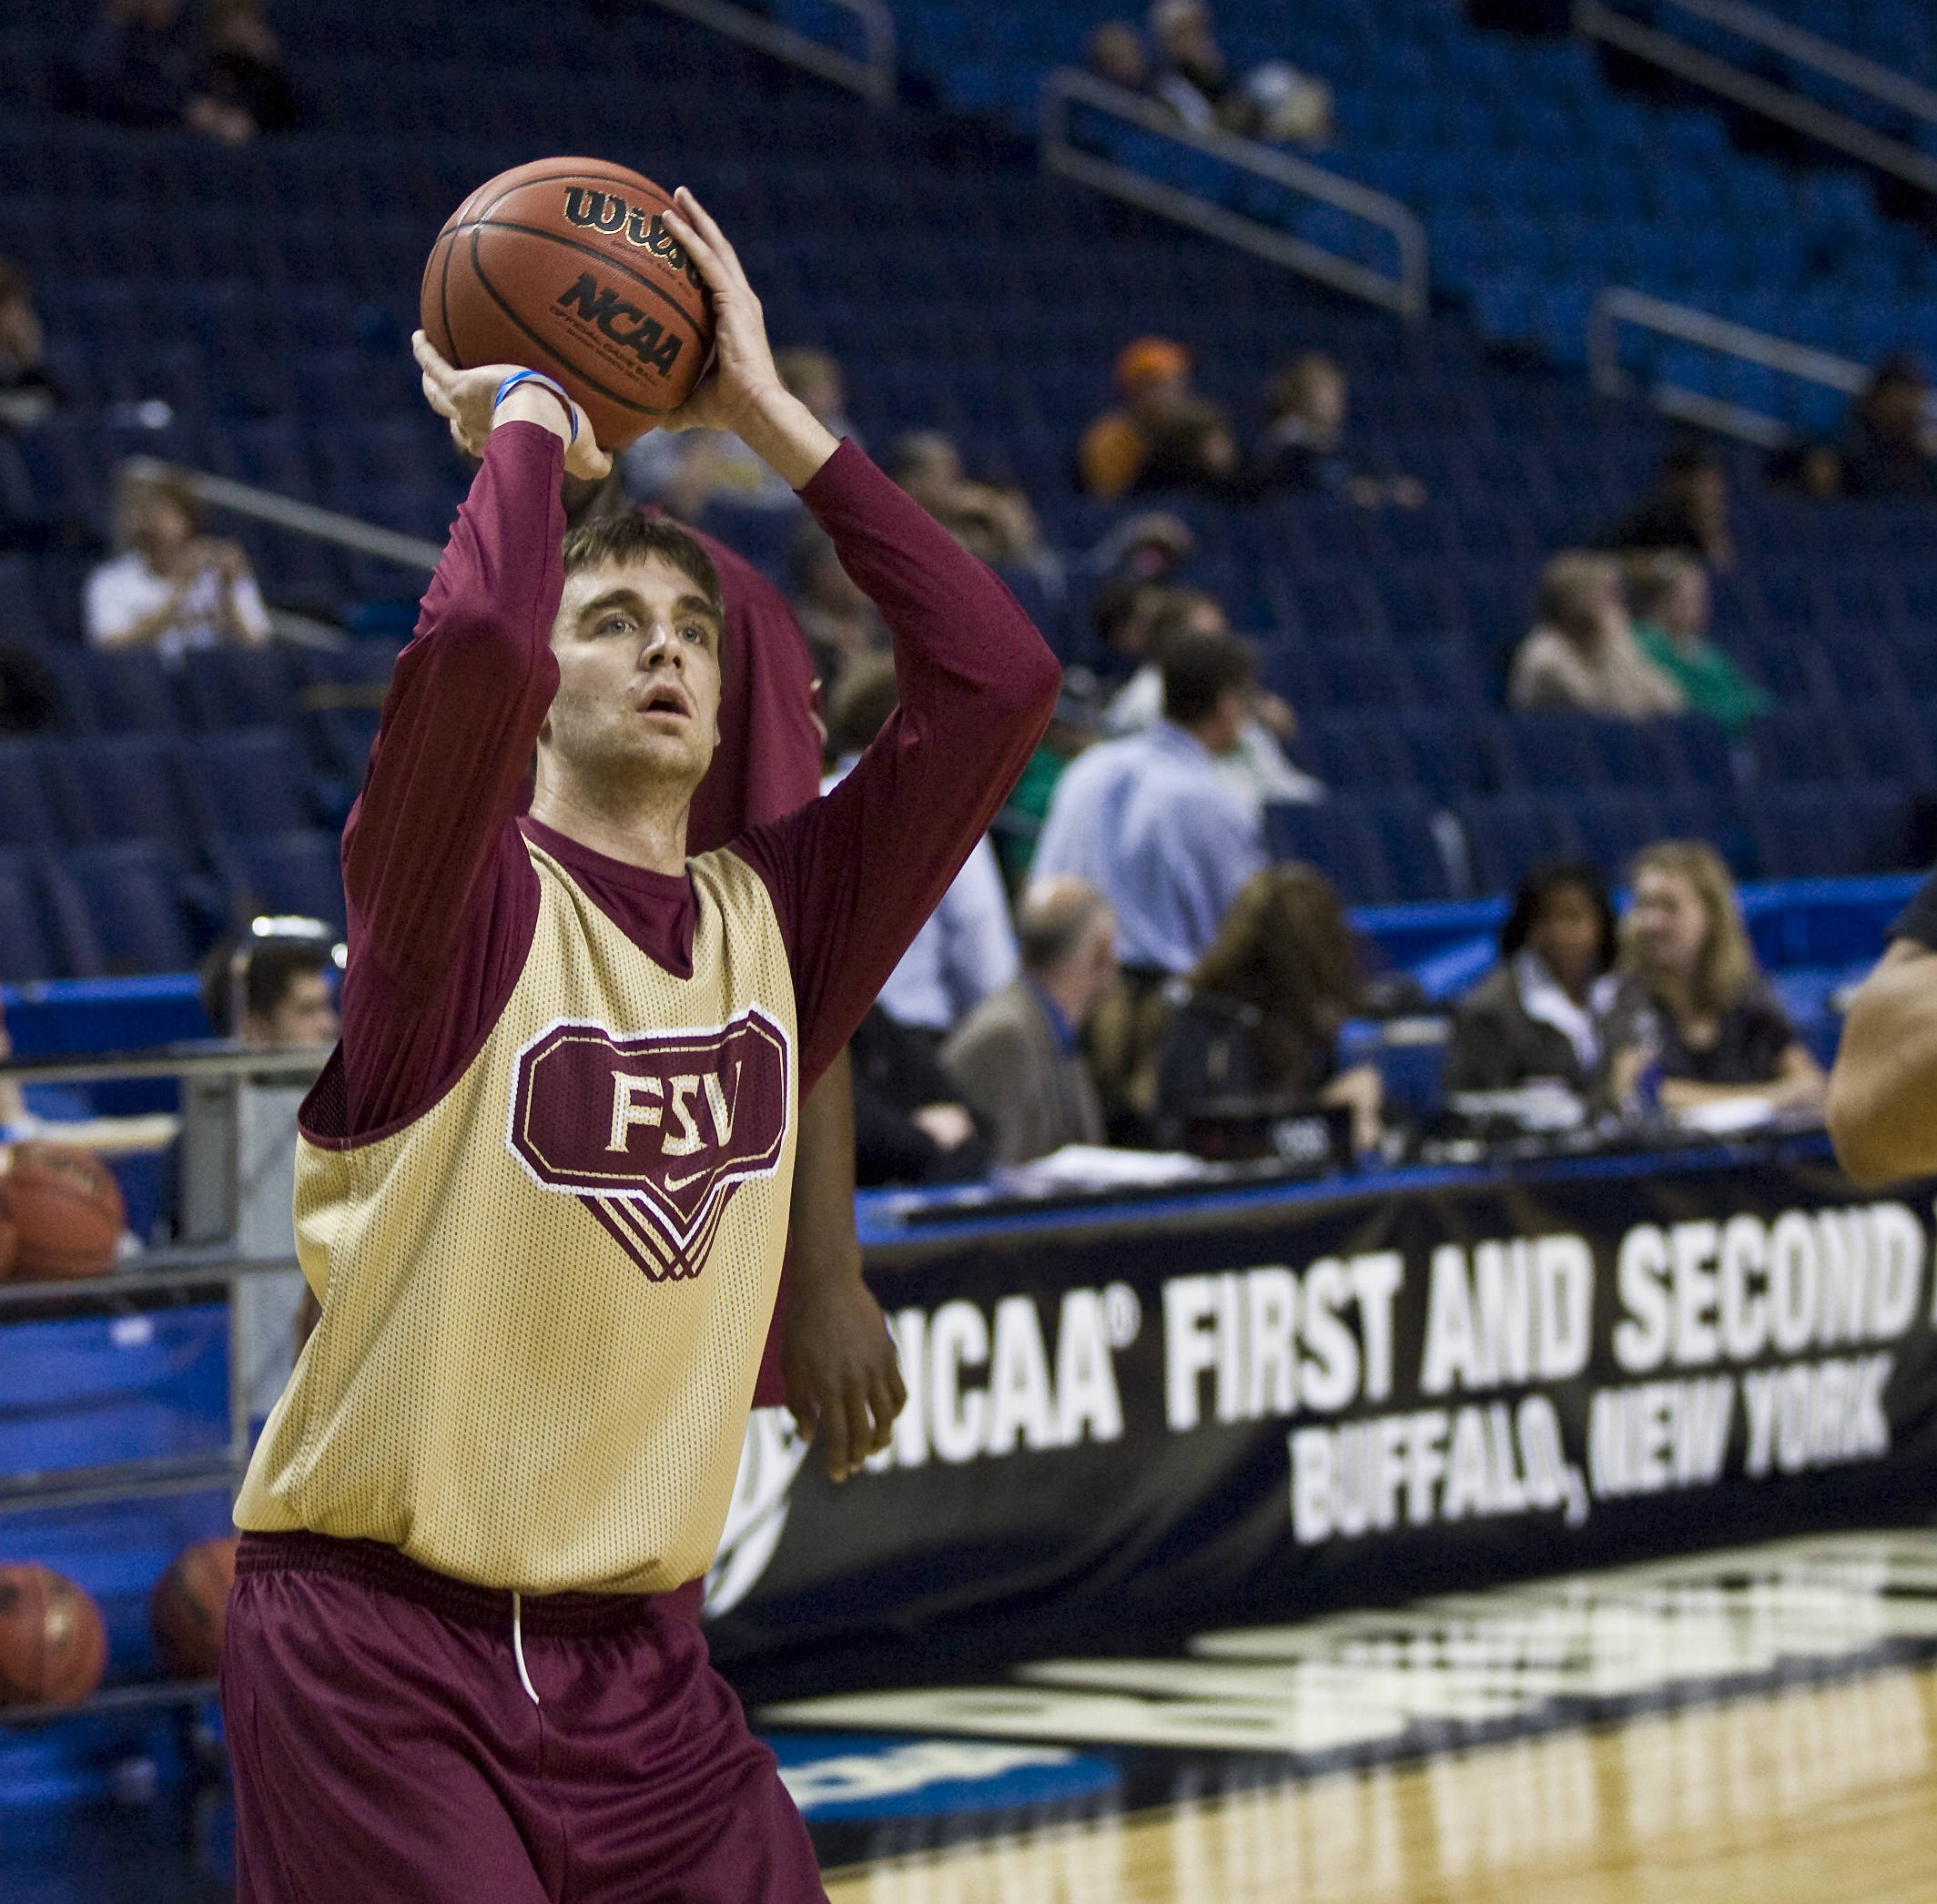 Junior Andrew Rutledge takes a shot during FSU's afternoon practice.